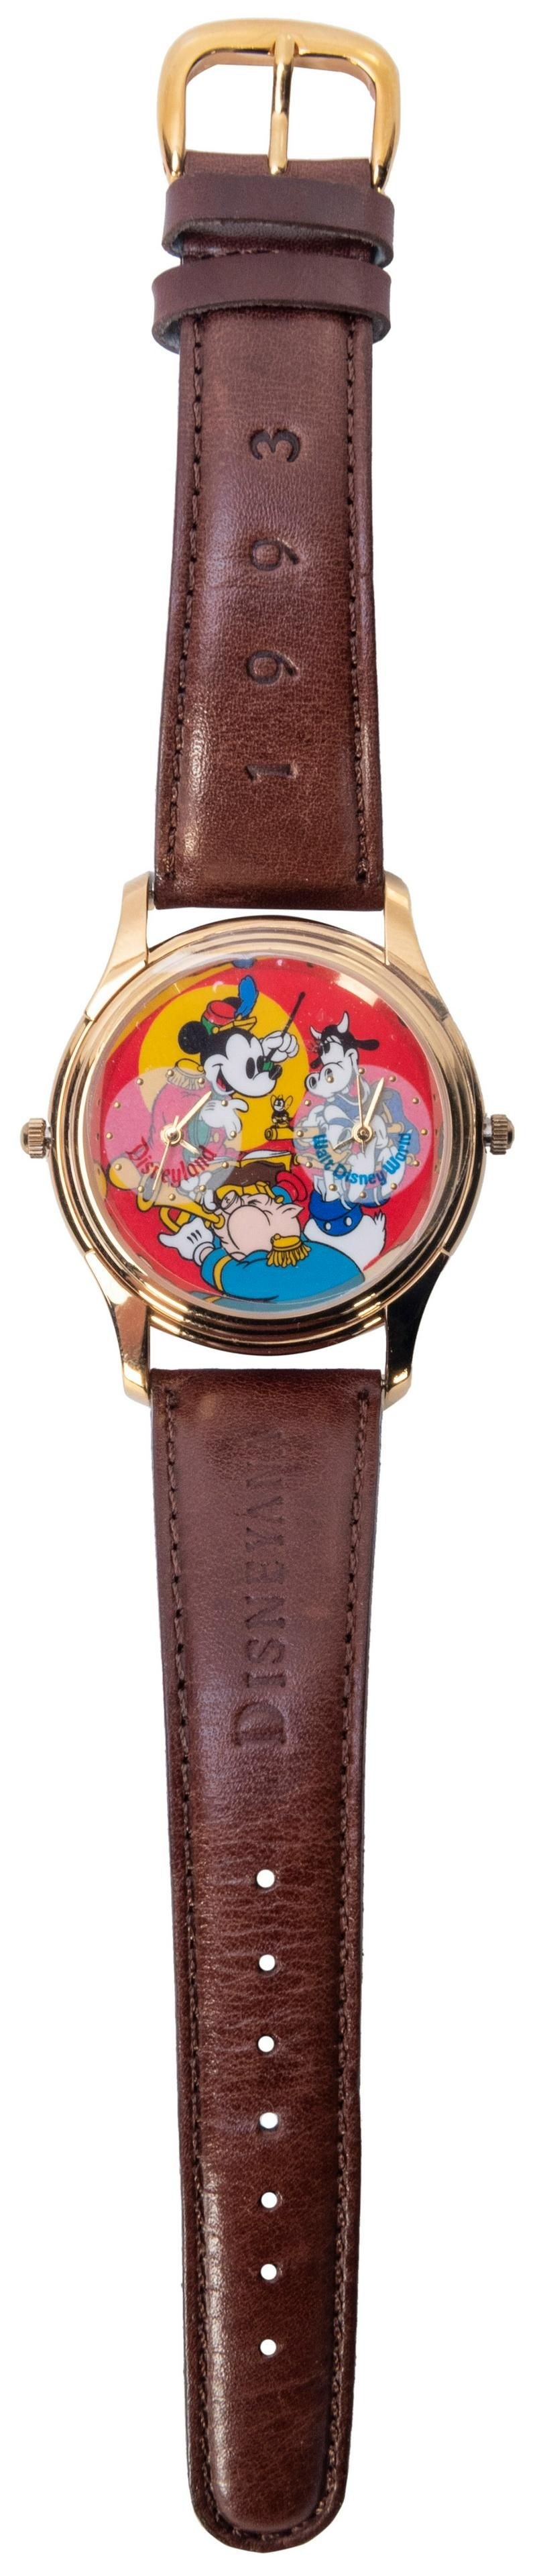 Official Disneyana Convention. 1993. Watch face depicts